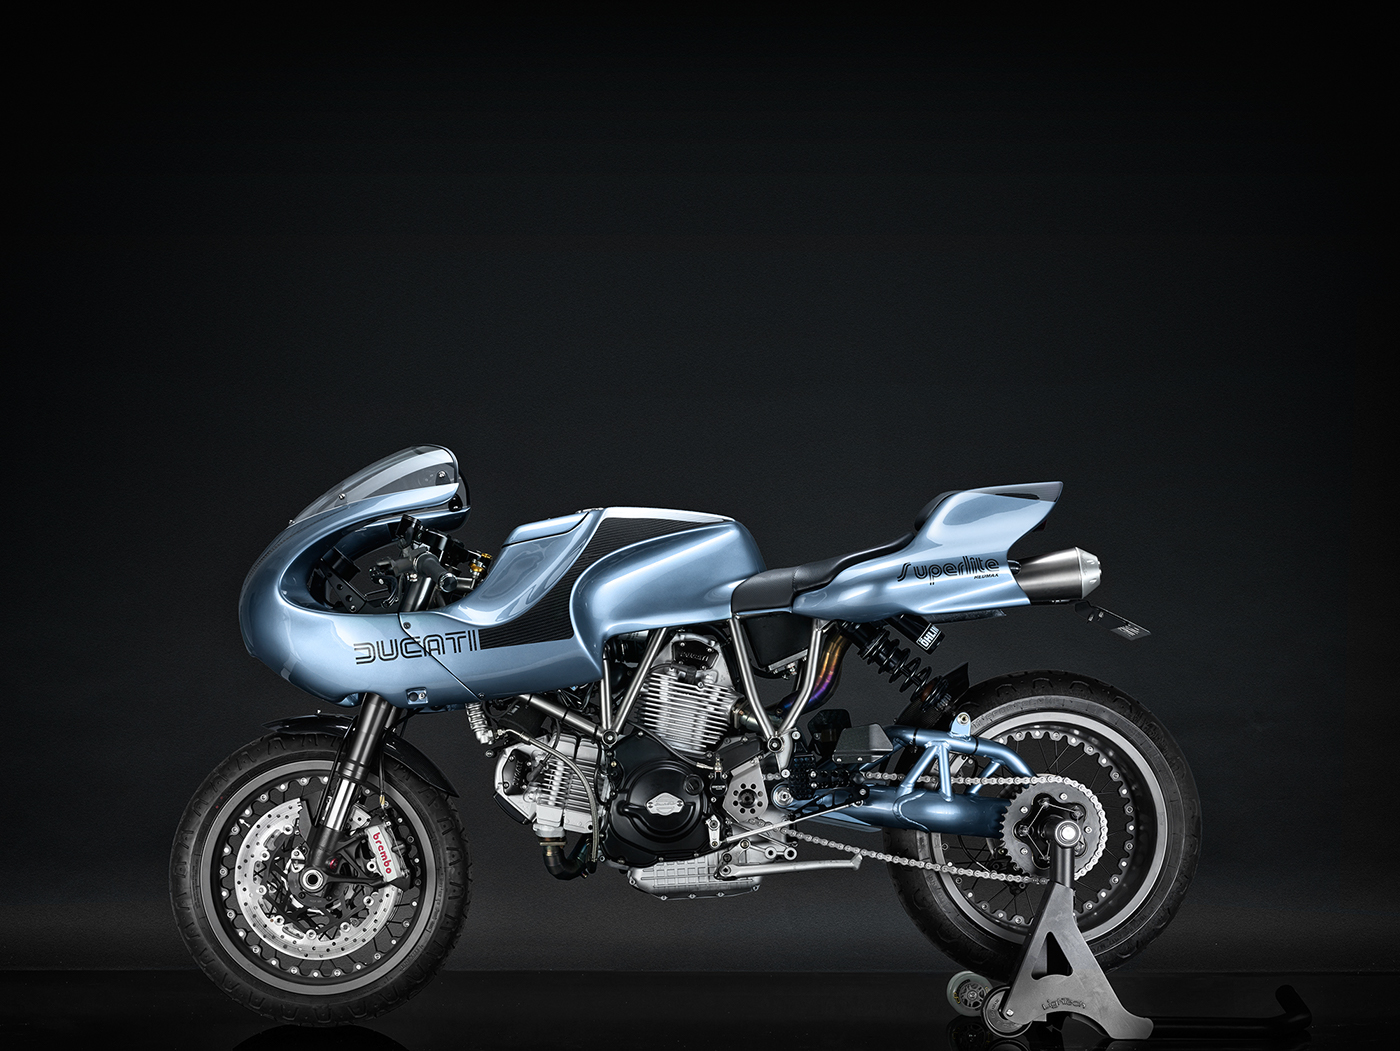 Ducati MH900 Evoluzione / Superlite cafe racer - RocketGarage - Cafe ...